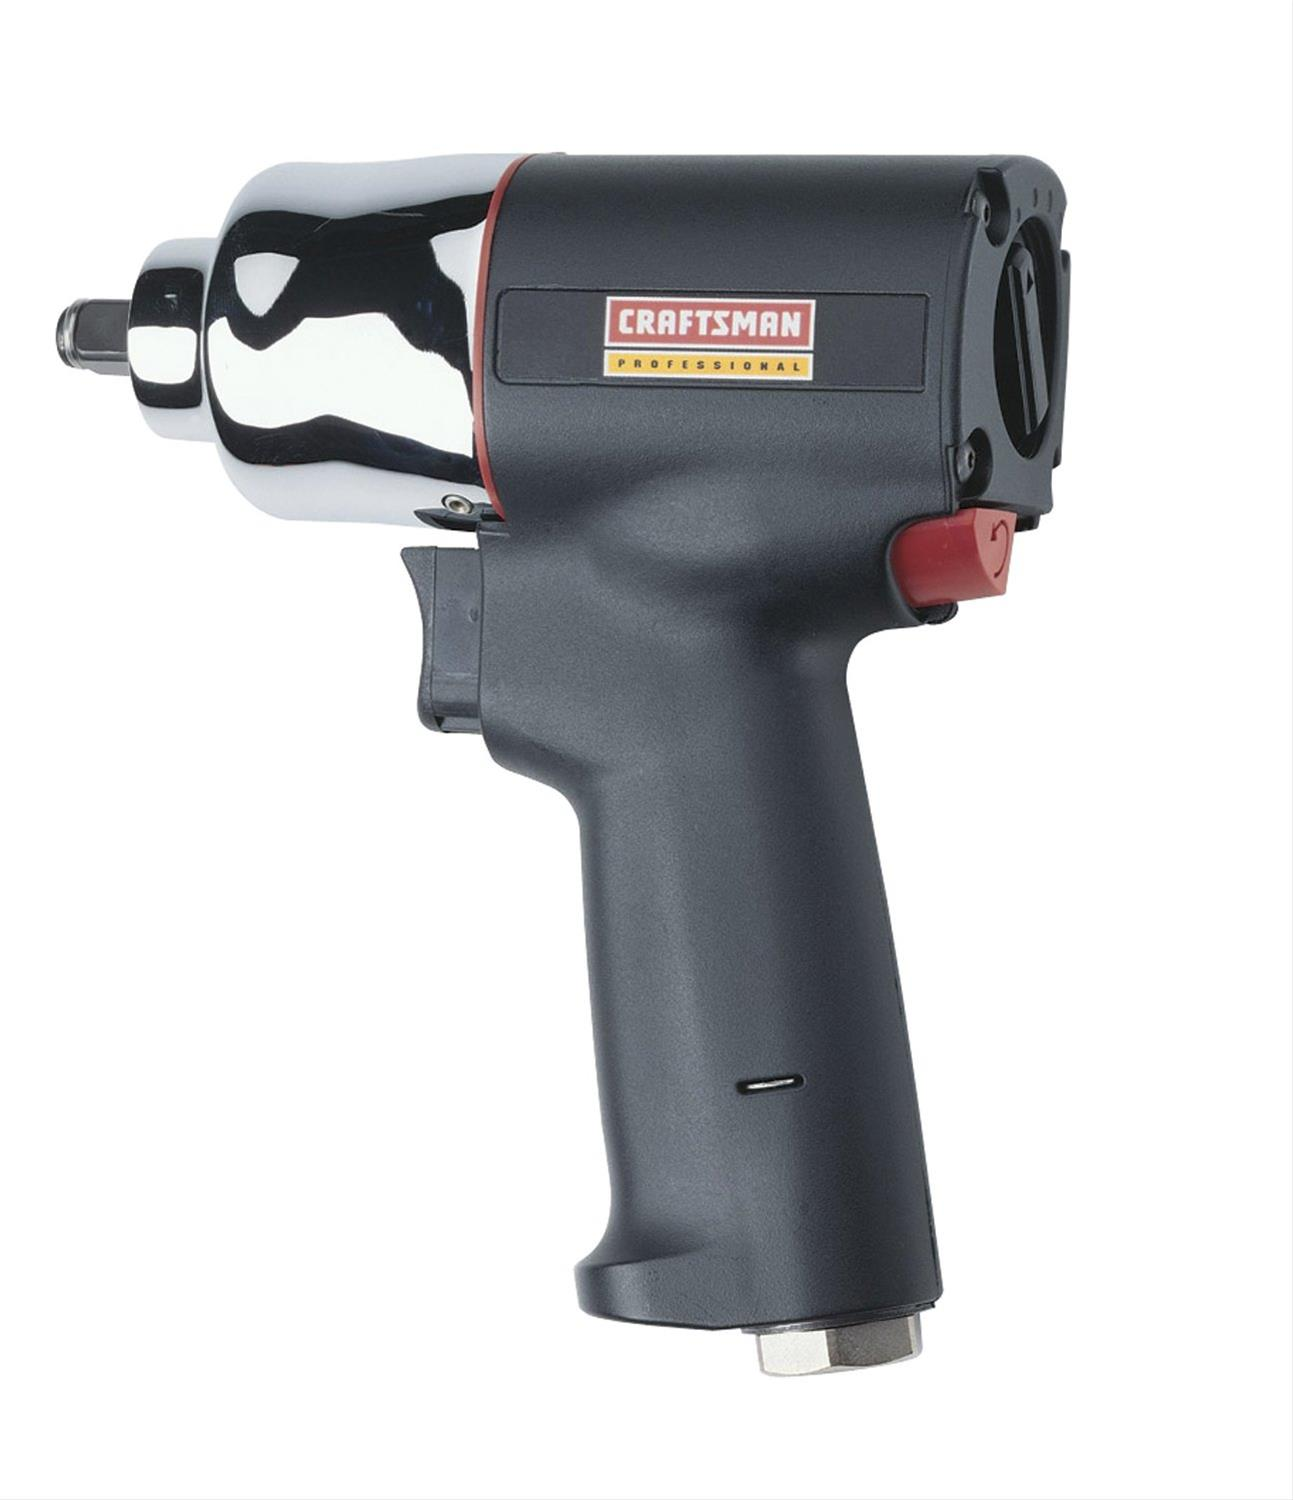 Craftsman Professional 3 8 In Drive Impact Wrenches 009 19916 Free Shipping On Orders Over 99 At Summit Racing